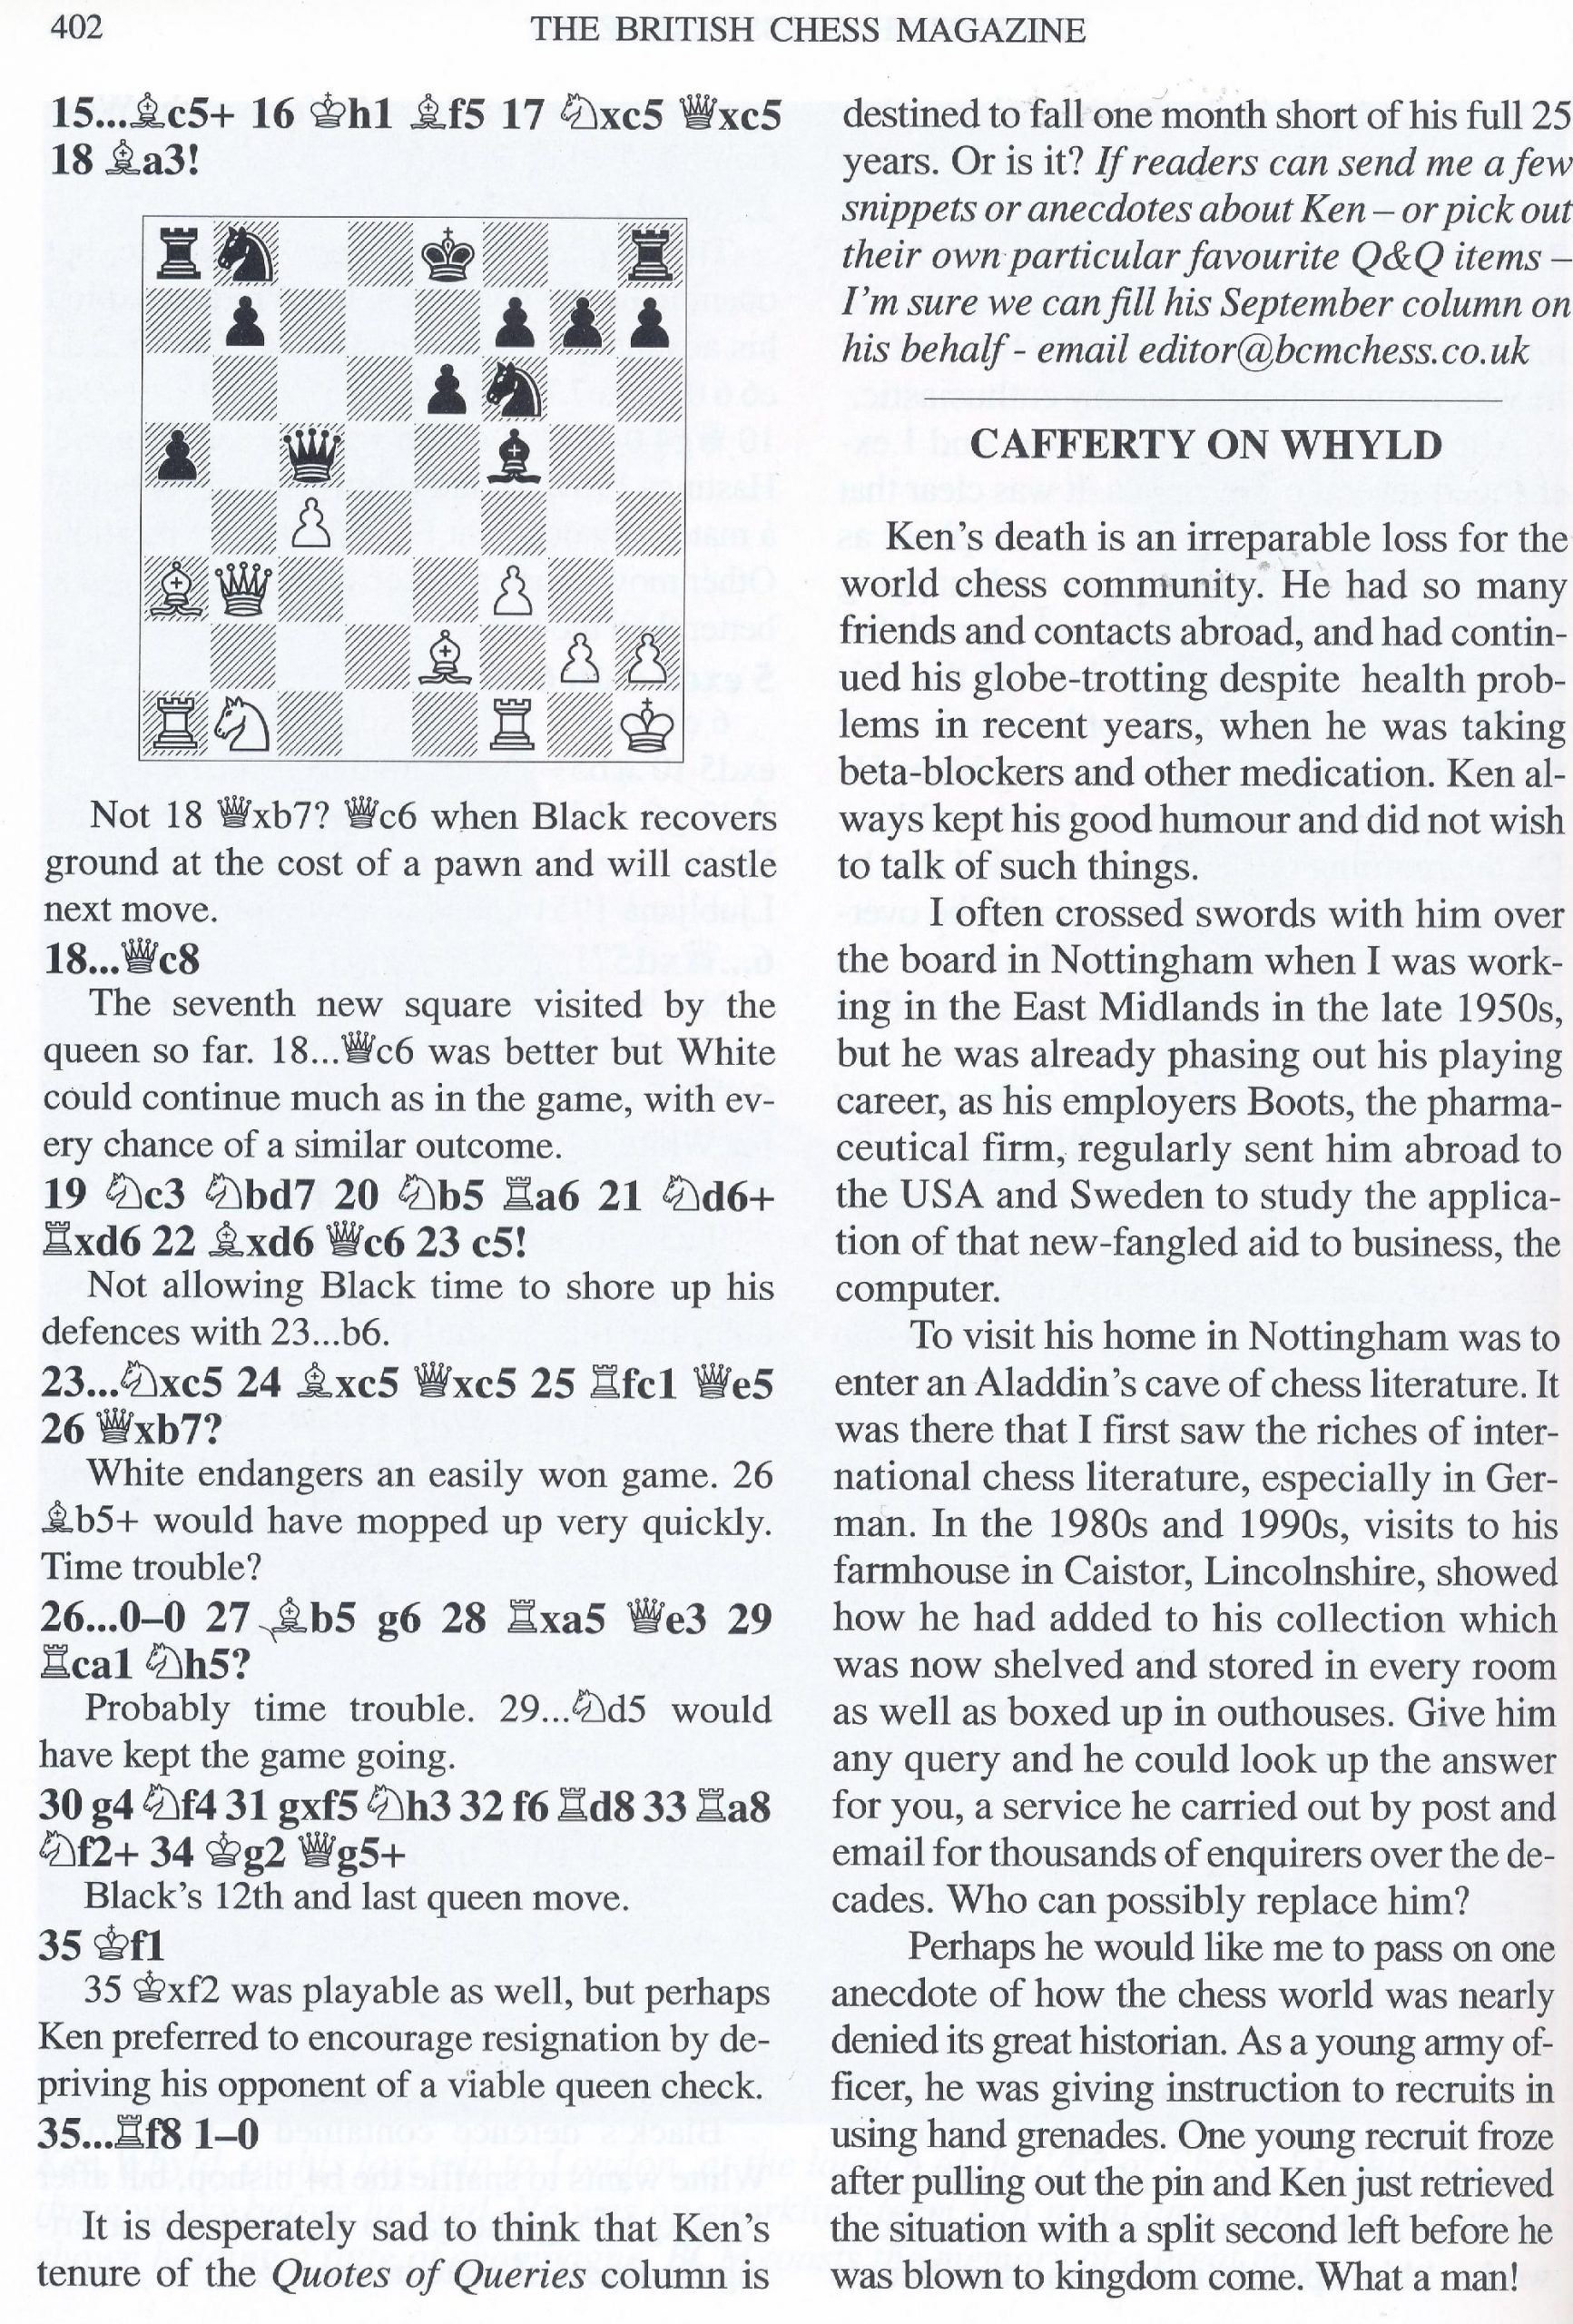 Ken Whyld Remembered from British Chess Magazine, Volume CXXIII (123), Number 8 (August), page 402 by Editor, John Saunders and Bernard Cafferty